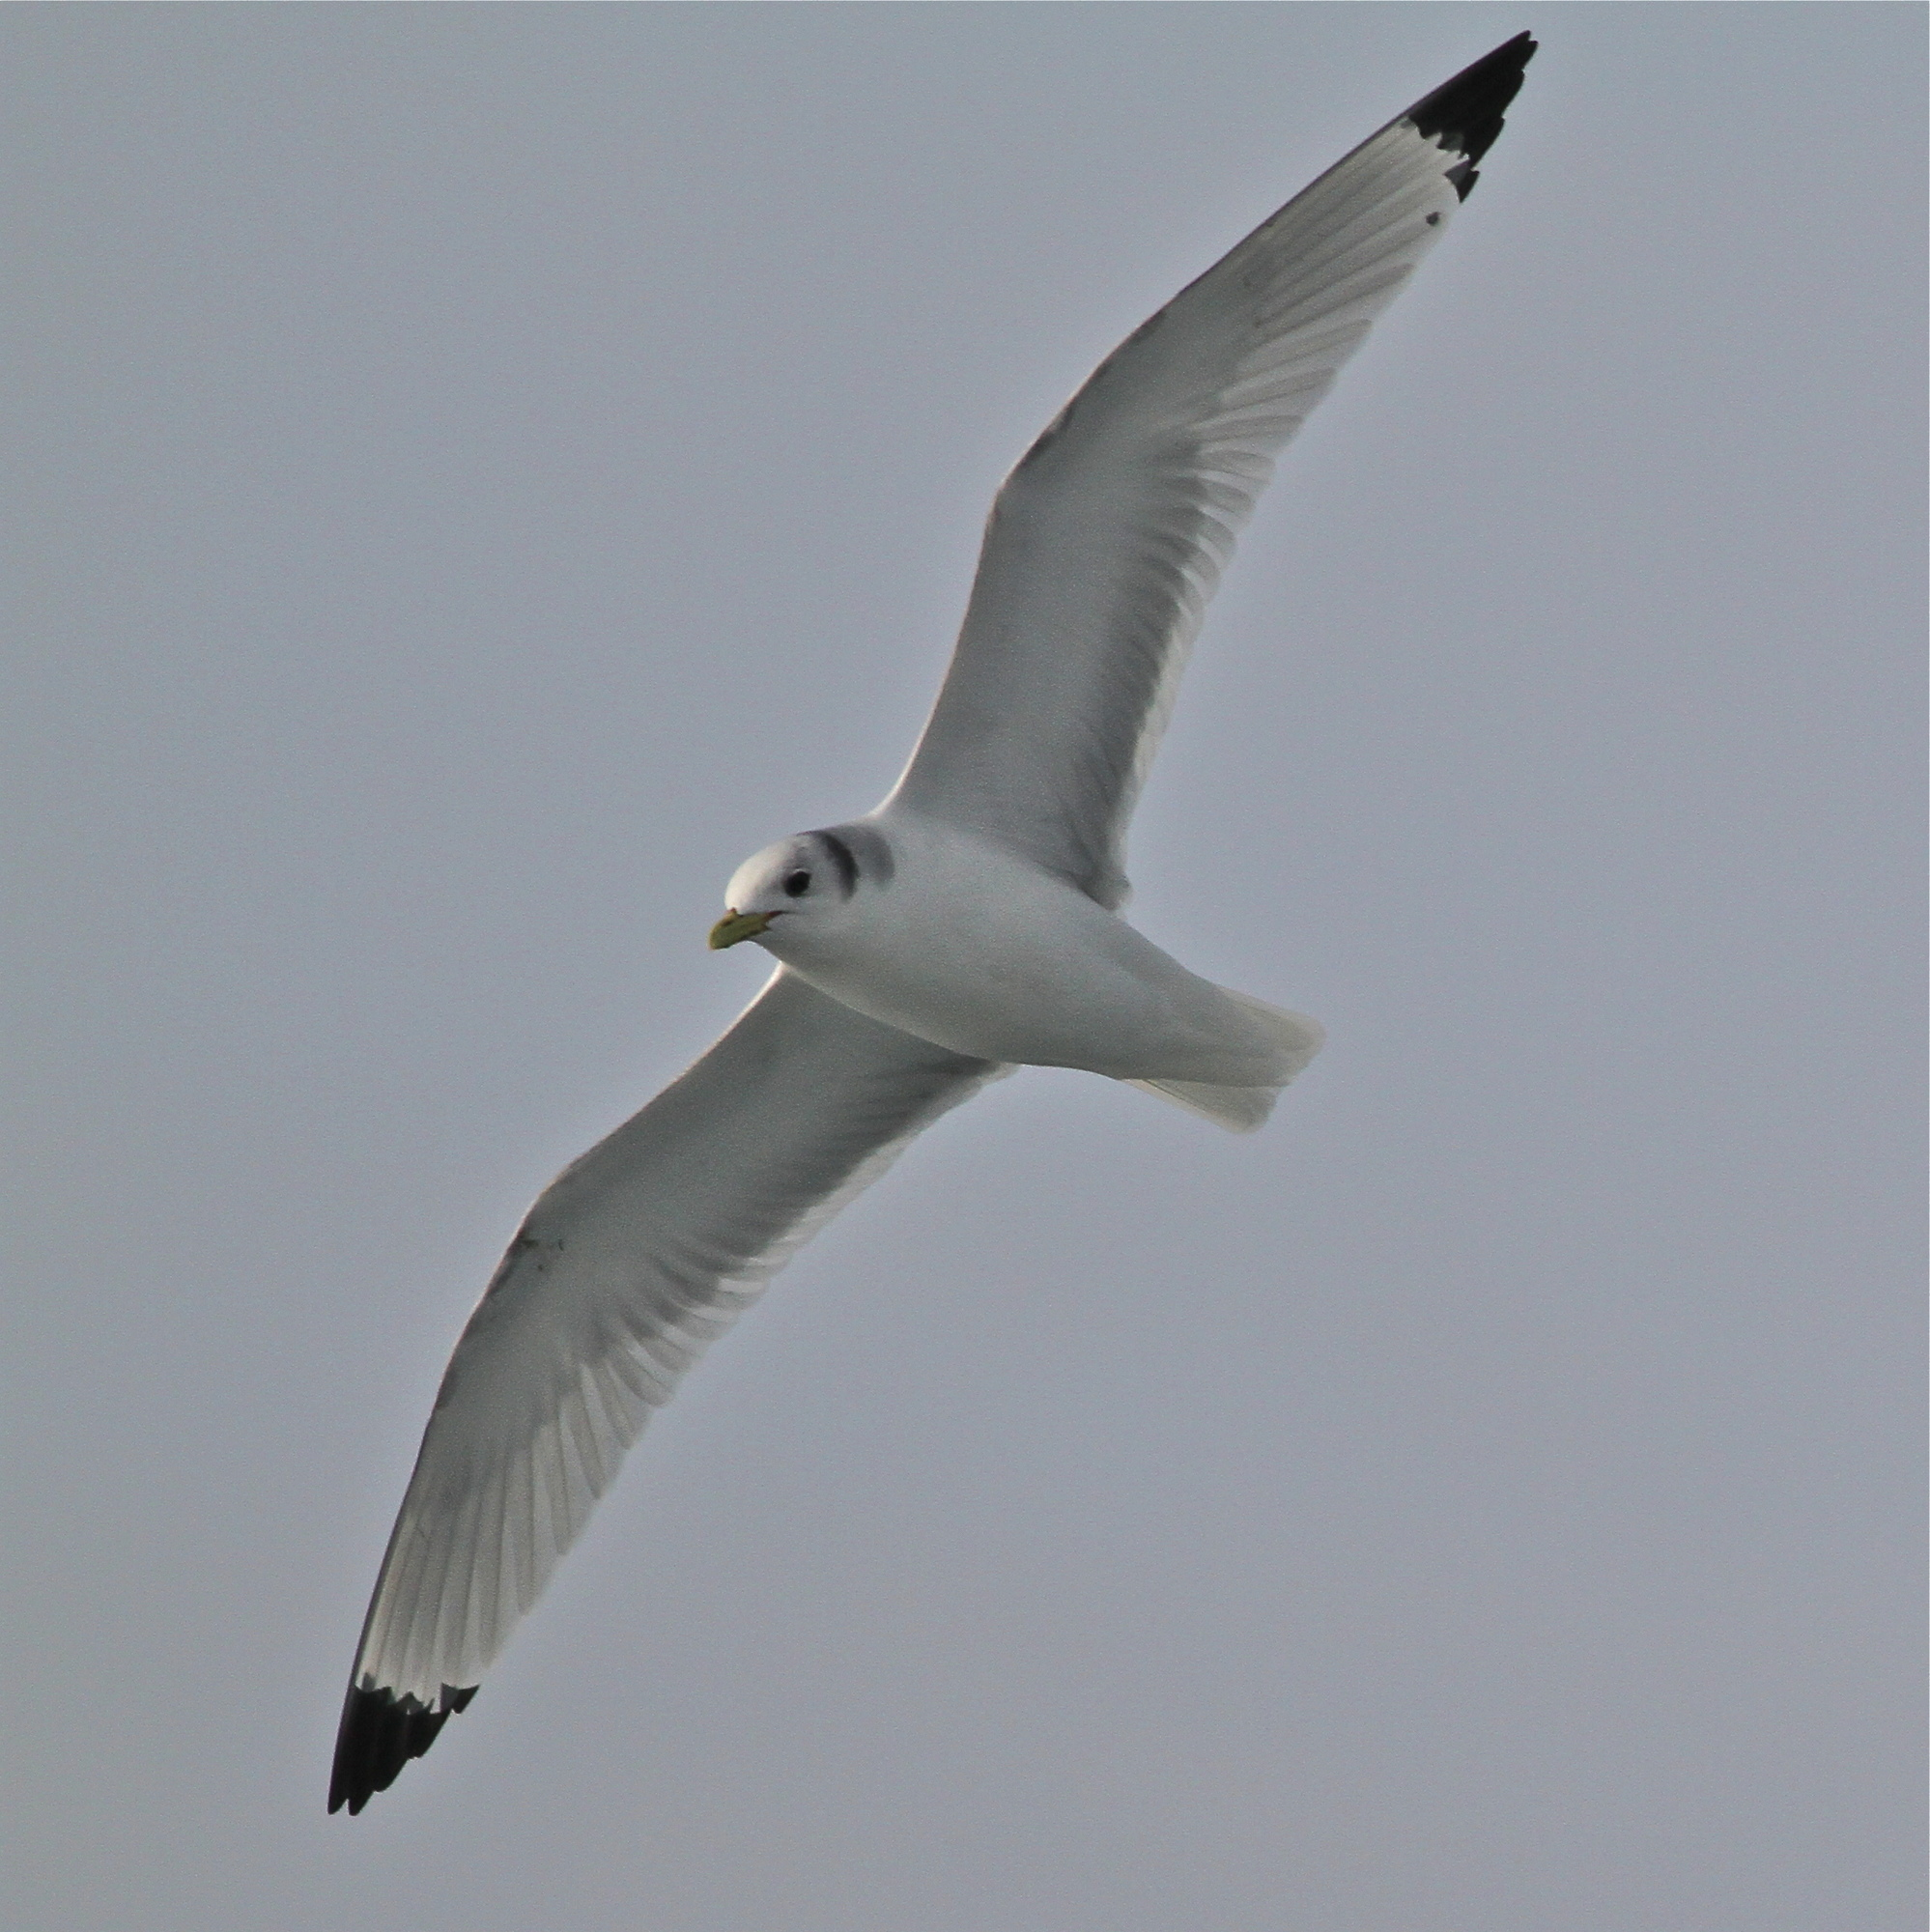 Black-legged Kittiwake, Martha Goetschkes